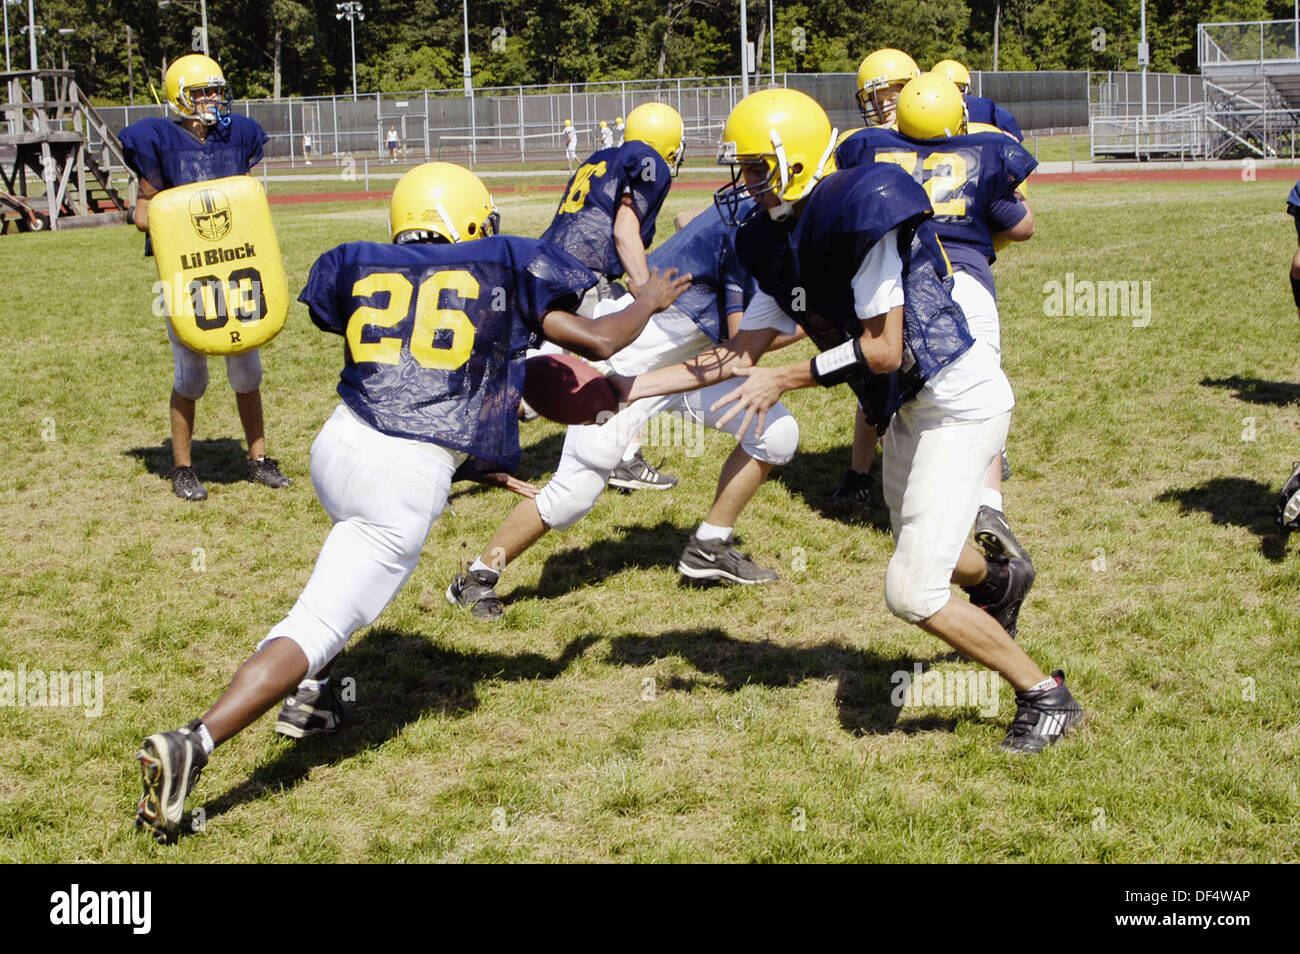 High School Football Practice Action Stock Photo 60958654